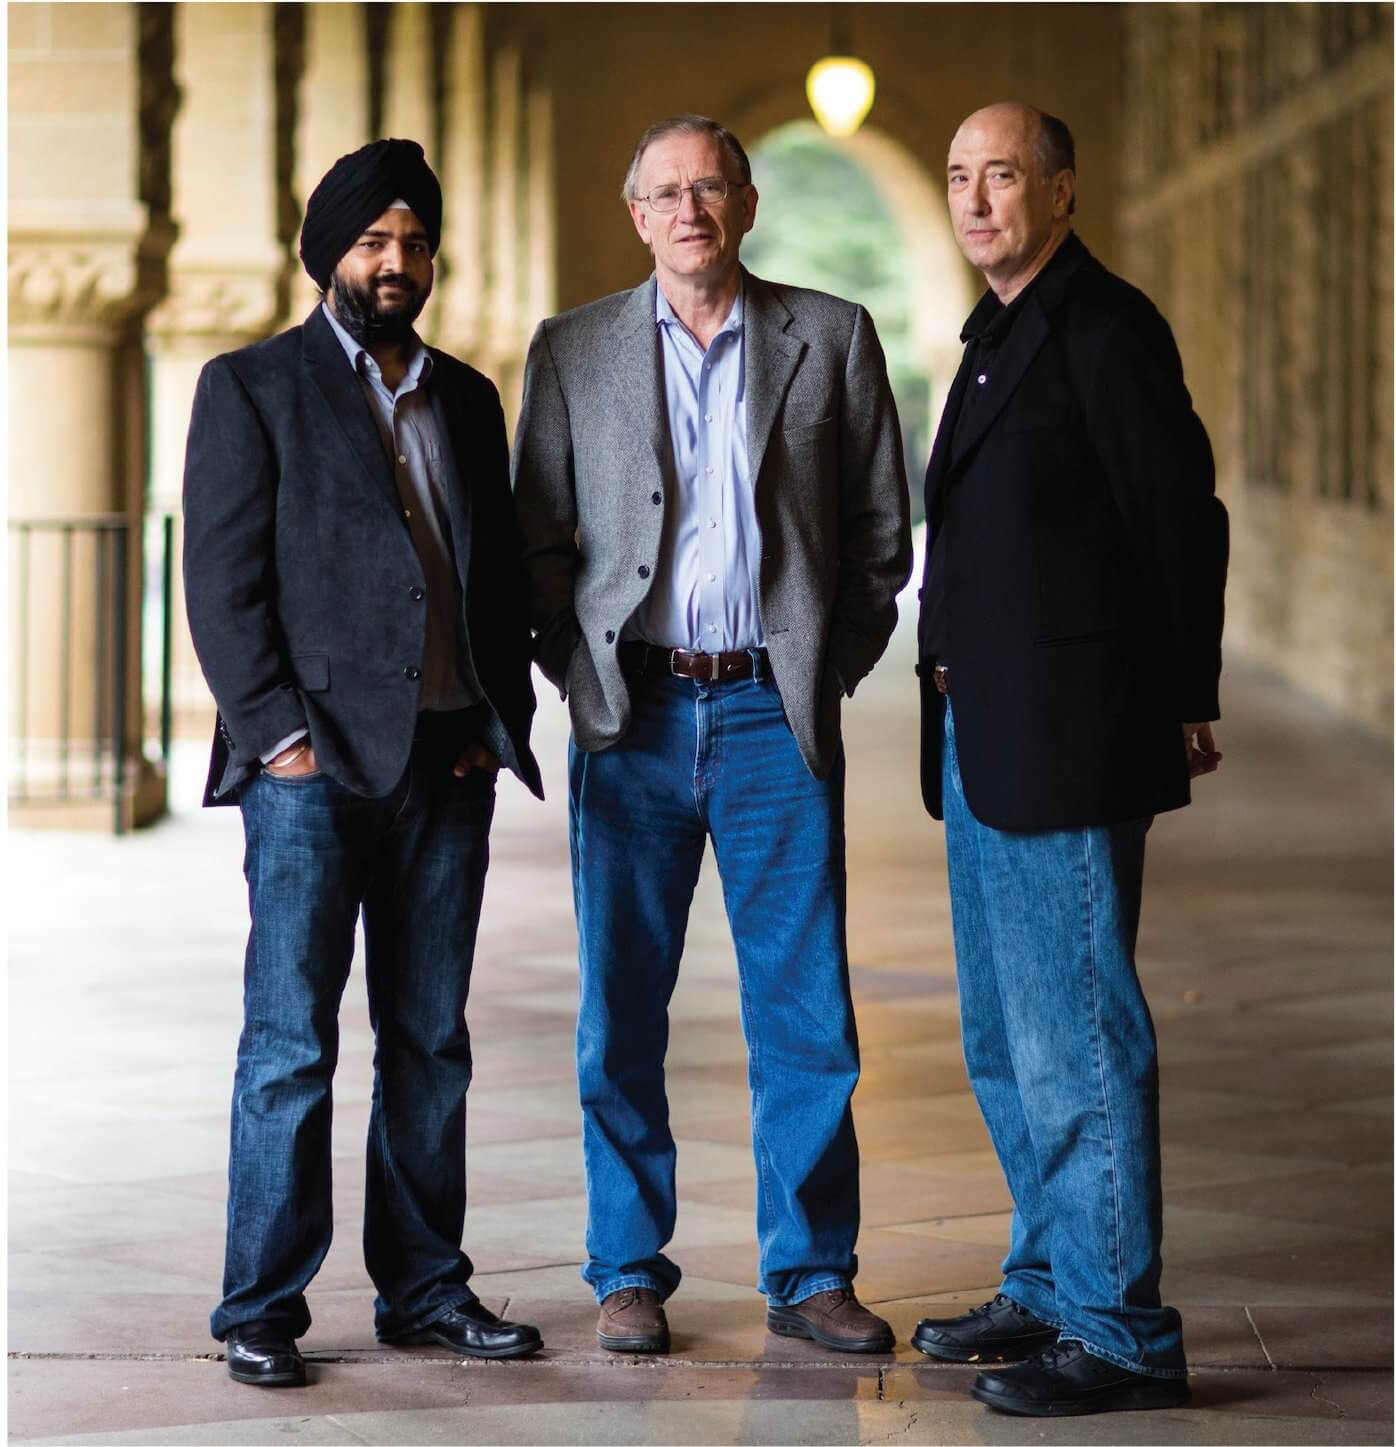 From left to right—Gurjeet Singh, Ph.D., Gunnar Carlsson, Ph.D., and Harlan Sexton, Ph.D., founded Ayasdi in 2008 to commercialize their research in topological data analysis.